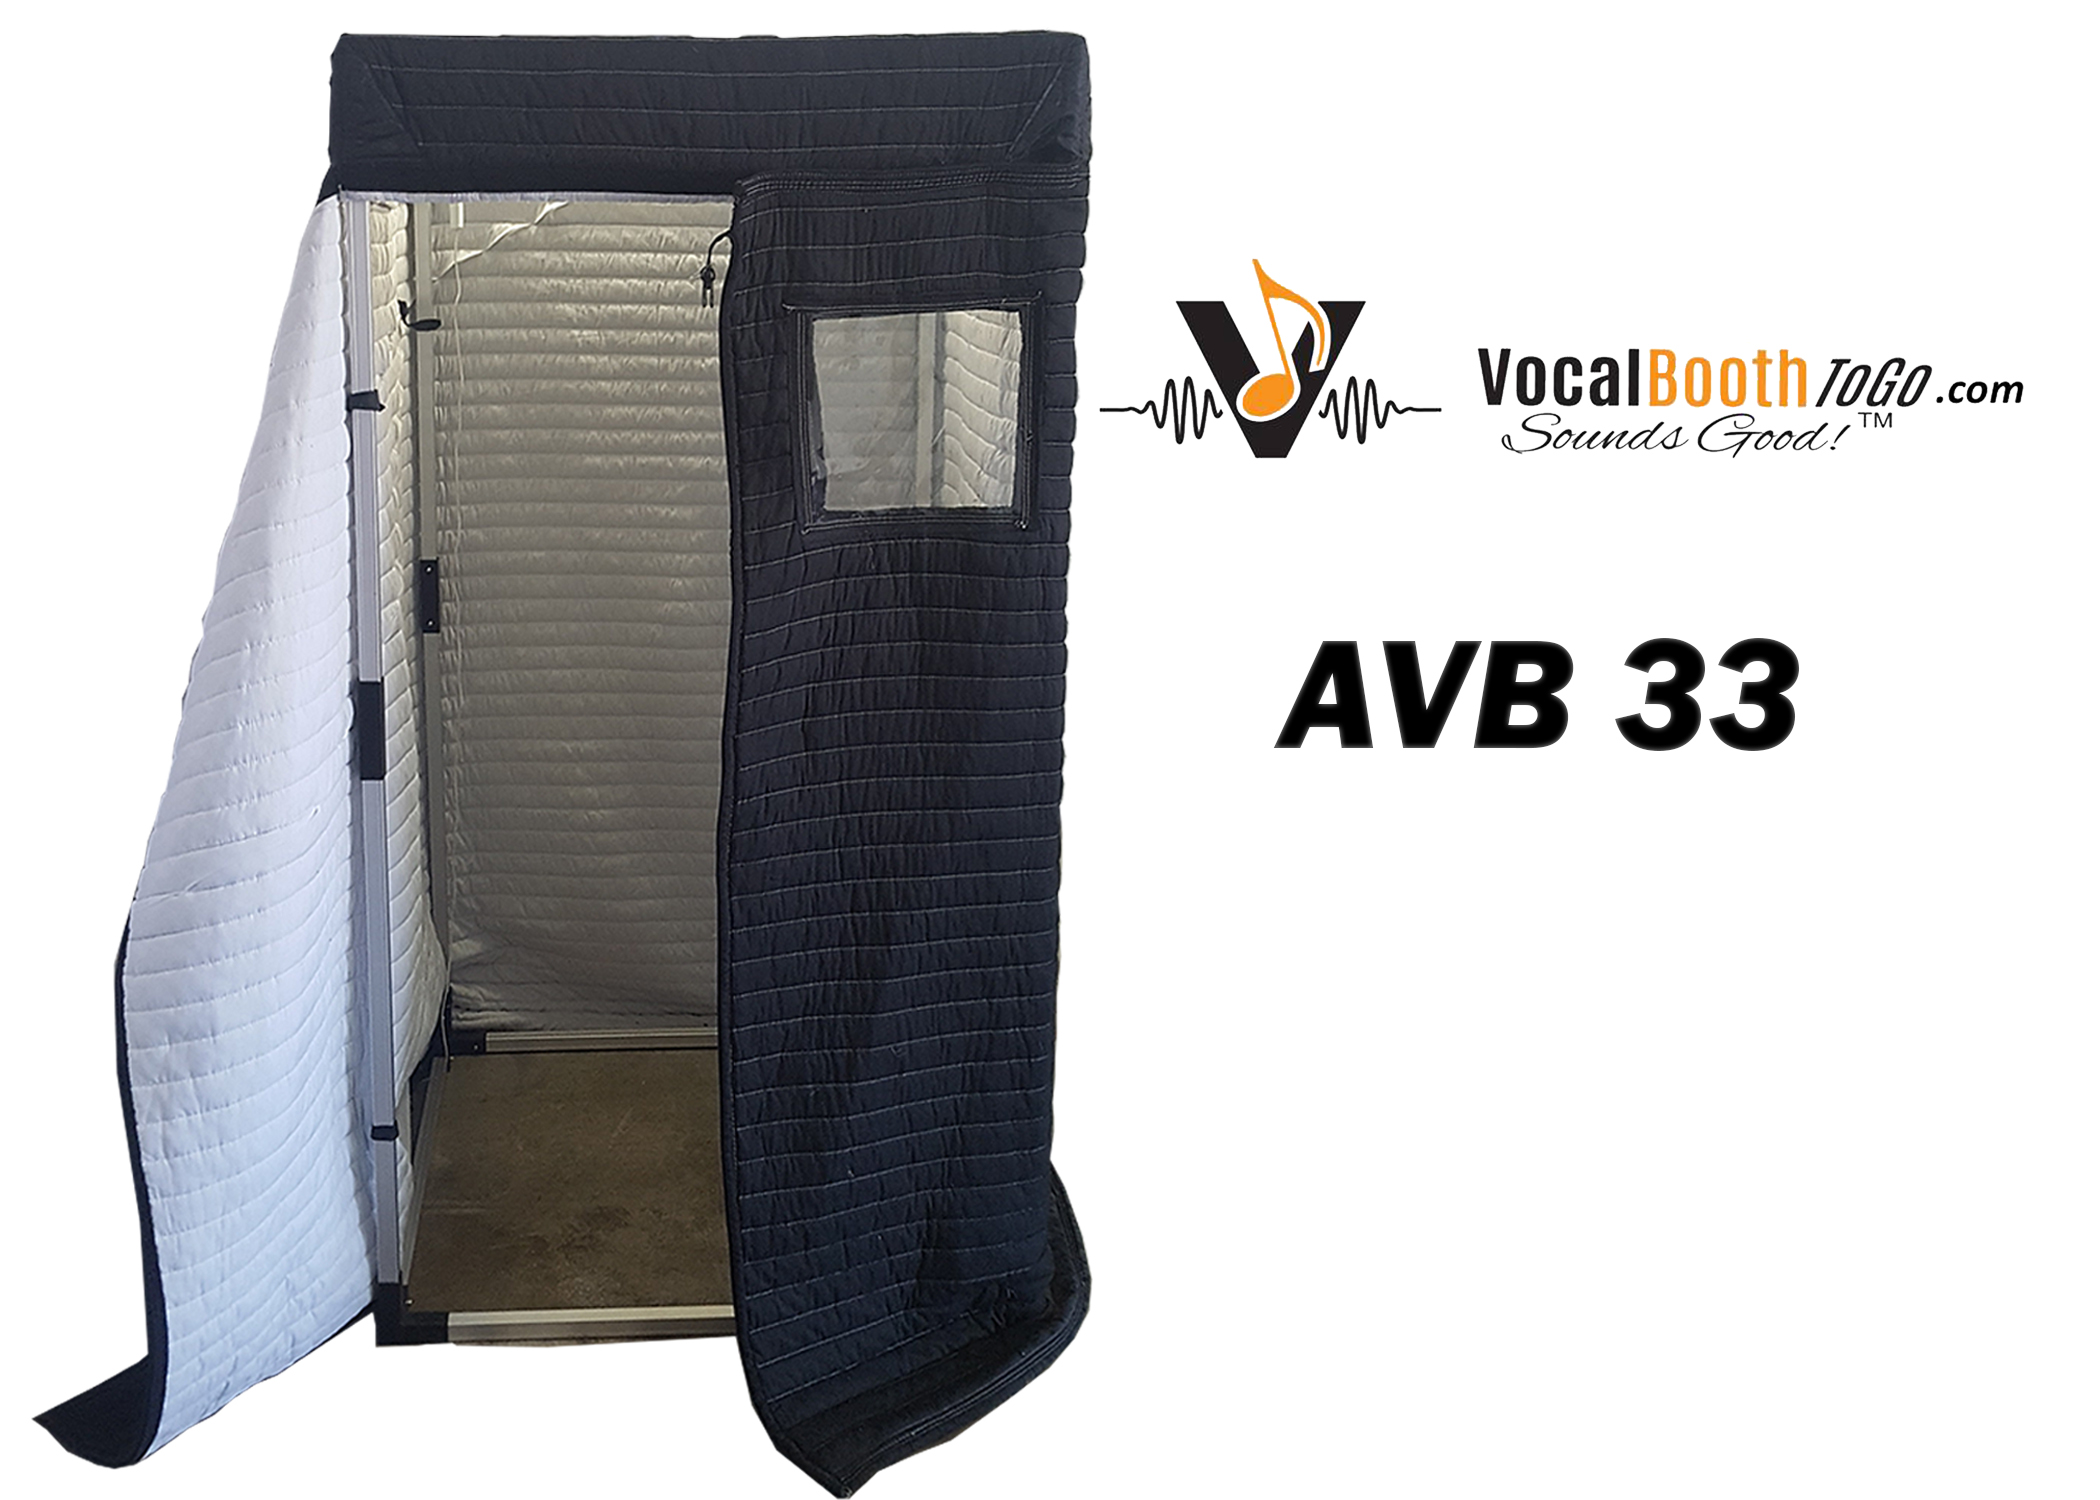 Acoustic Vocal Booth 3x3 Rental Vocal Booth Rentals